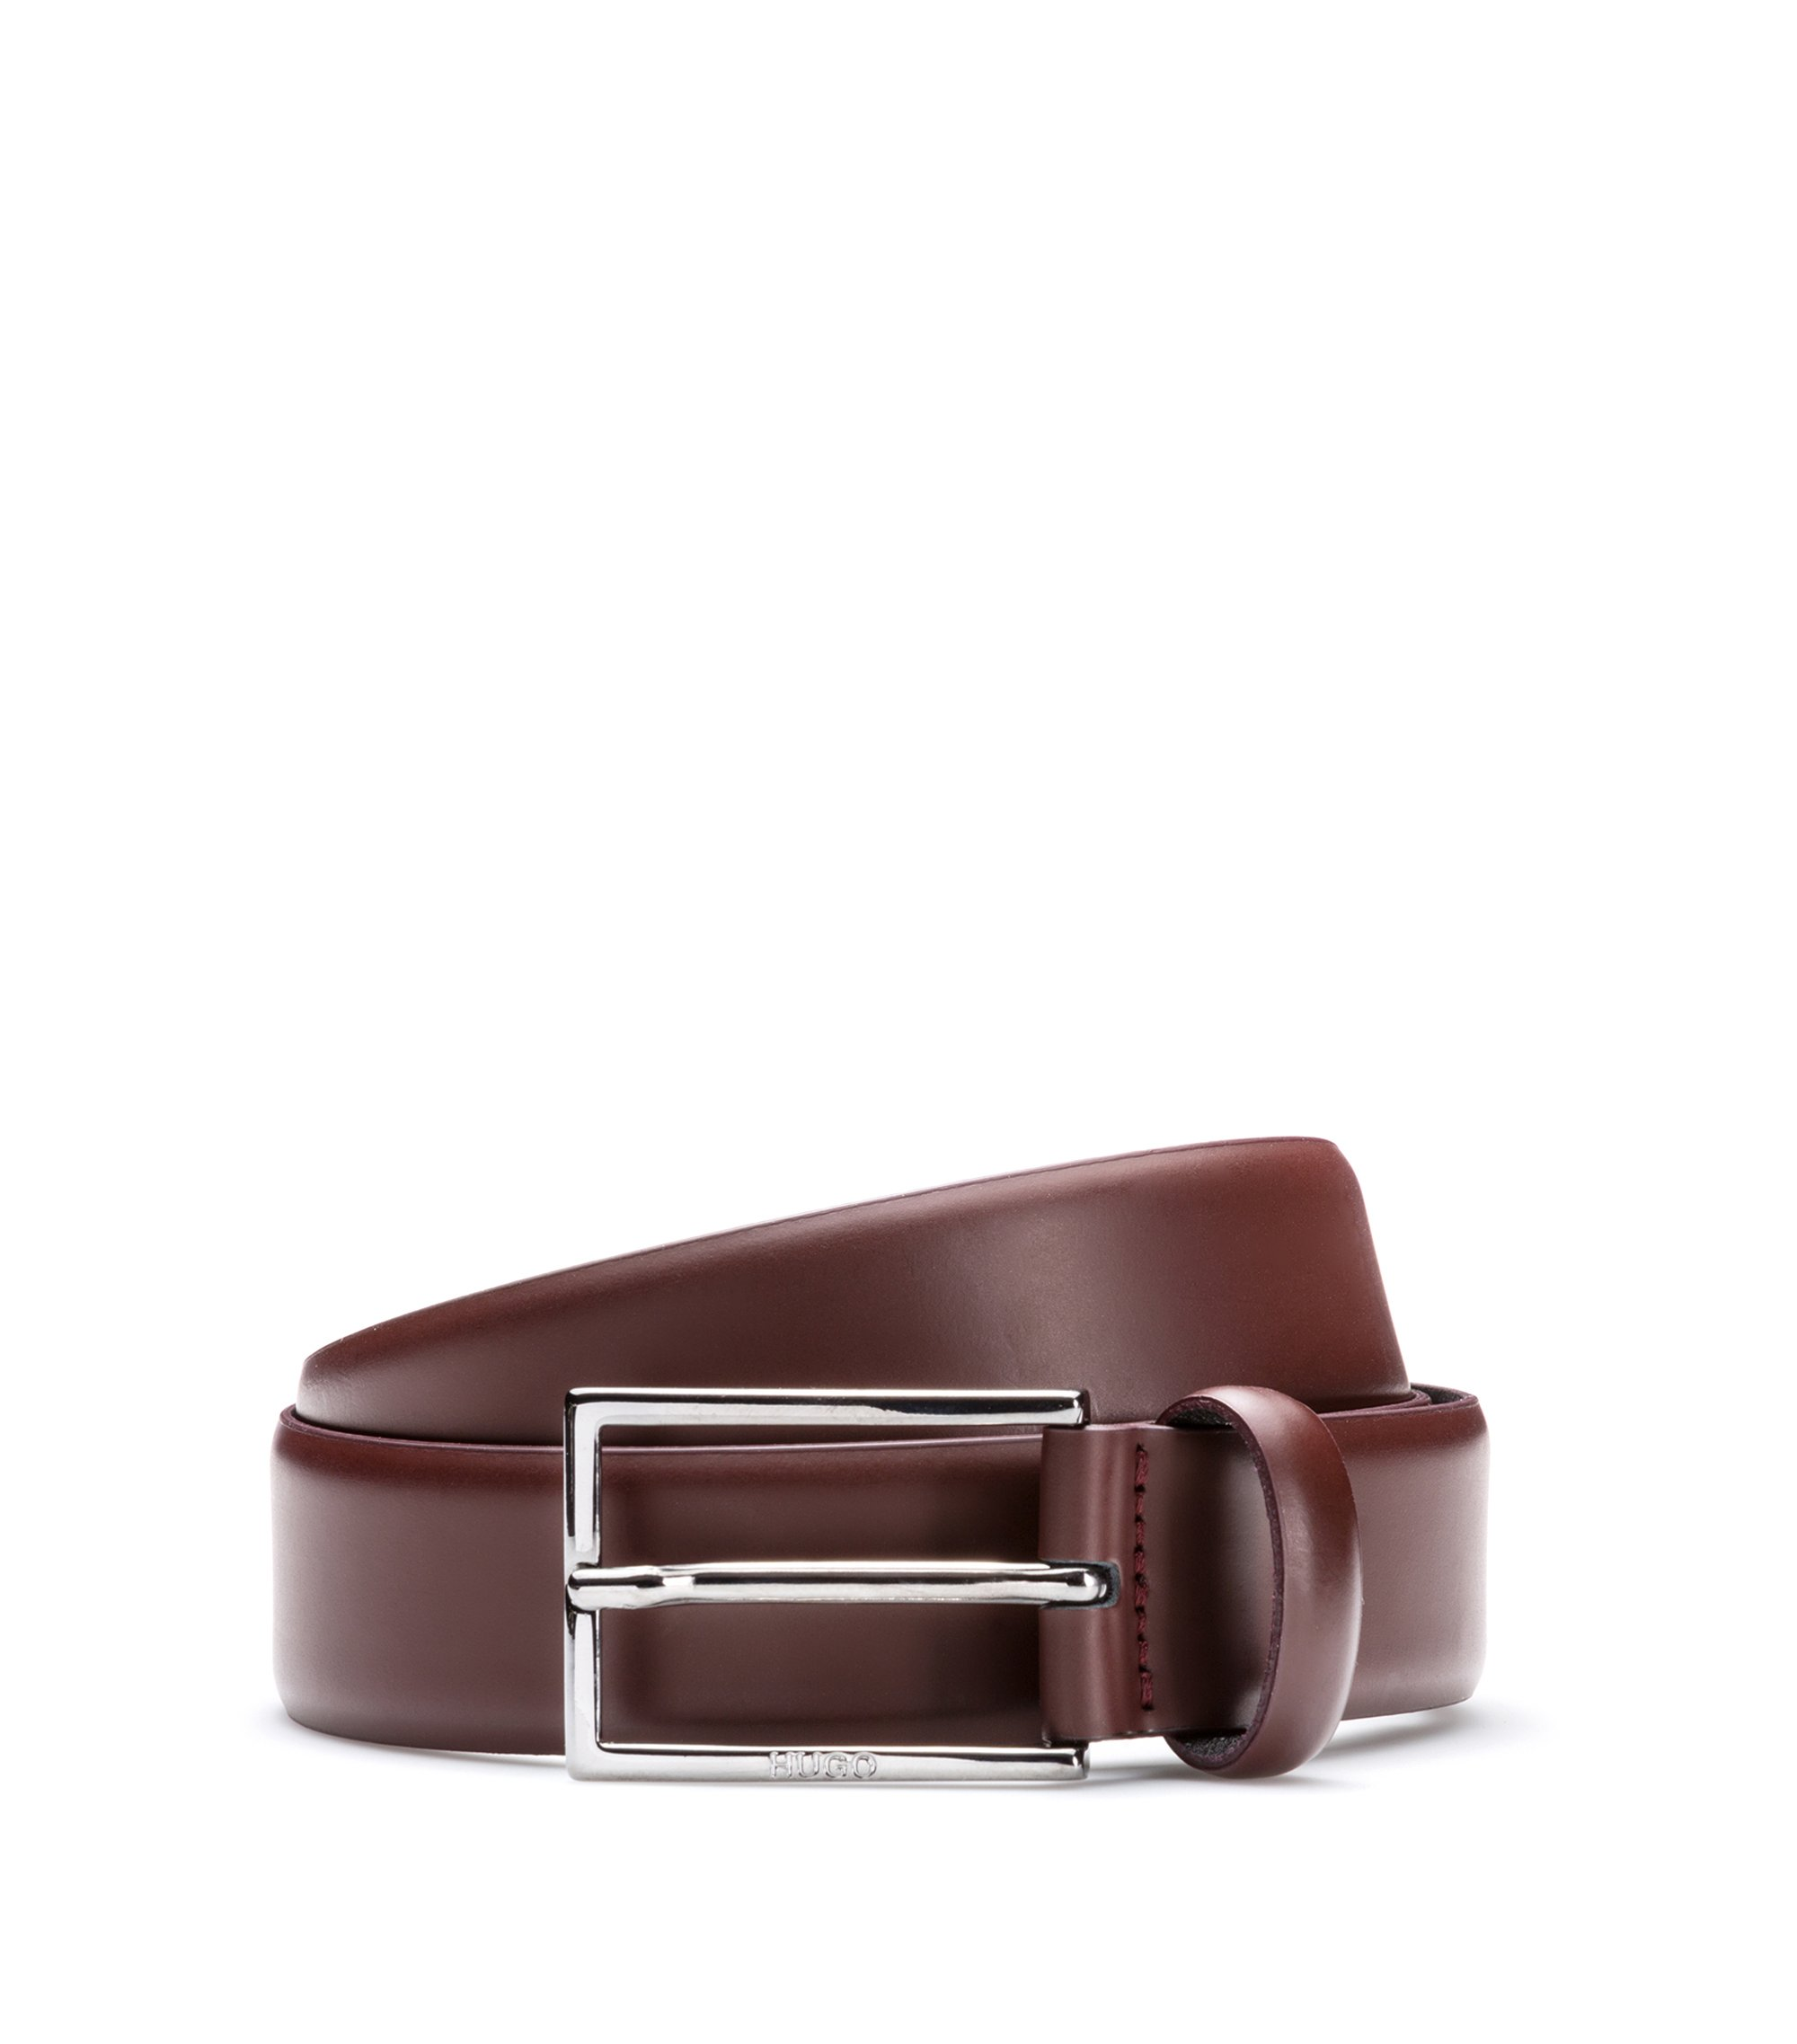 Brush-off leather belt with polished gunmetal hardware, Dark Red